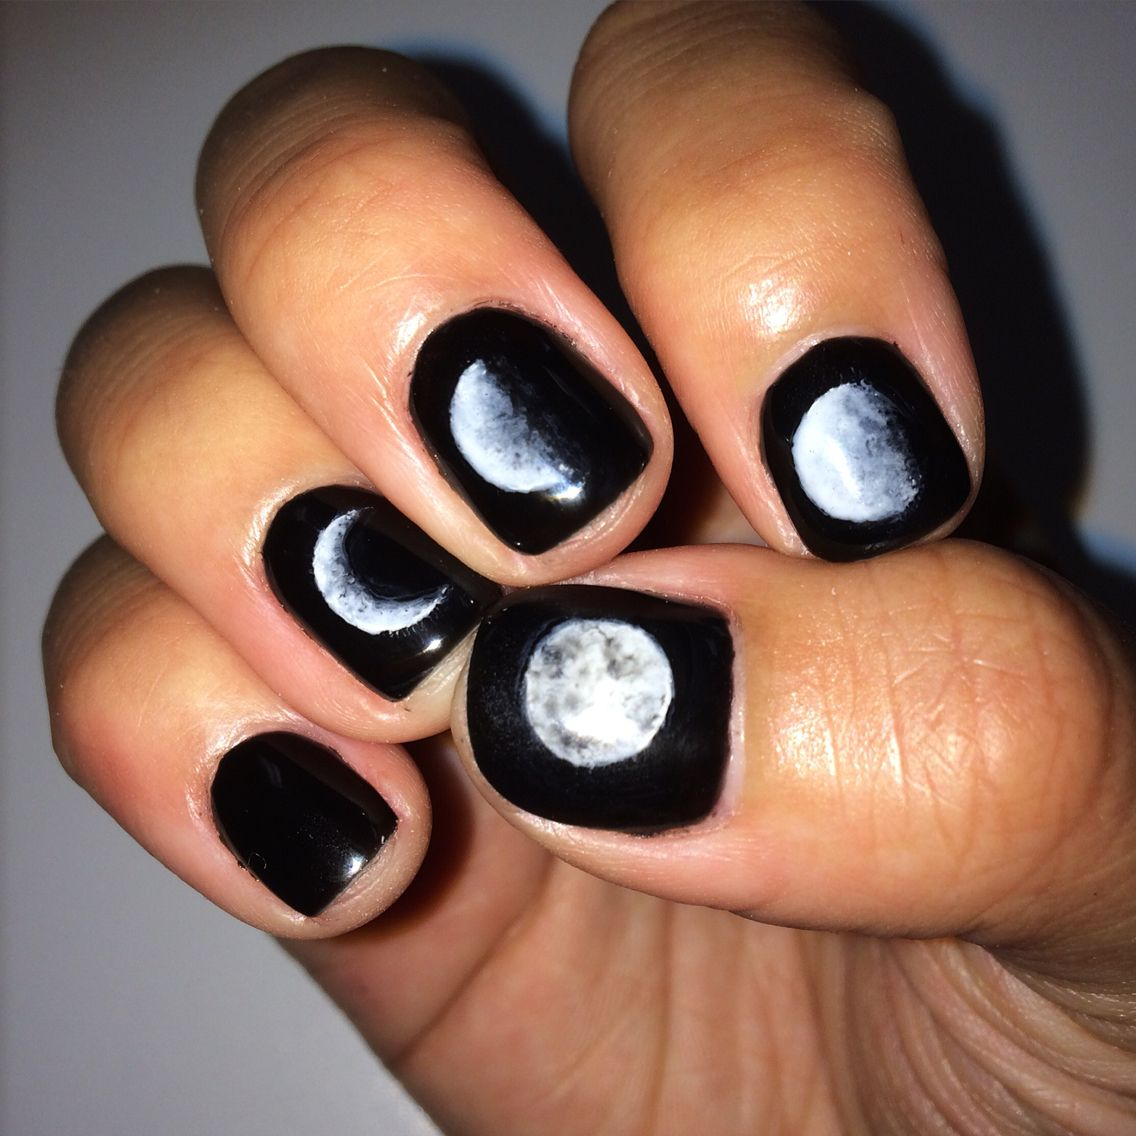 Phases of the moon nail art - Phases Of The Moon Nail Art Nail Art Pinterest Moon Nails